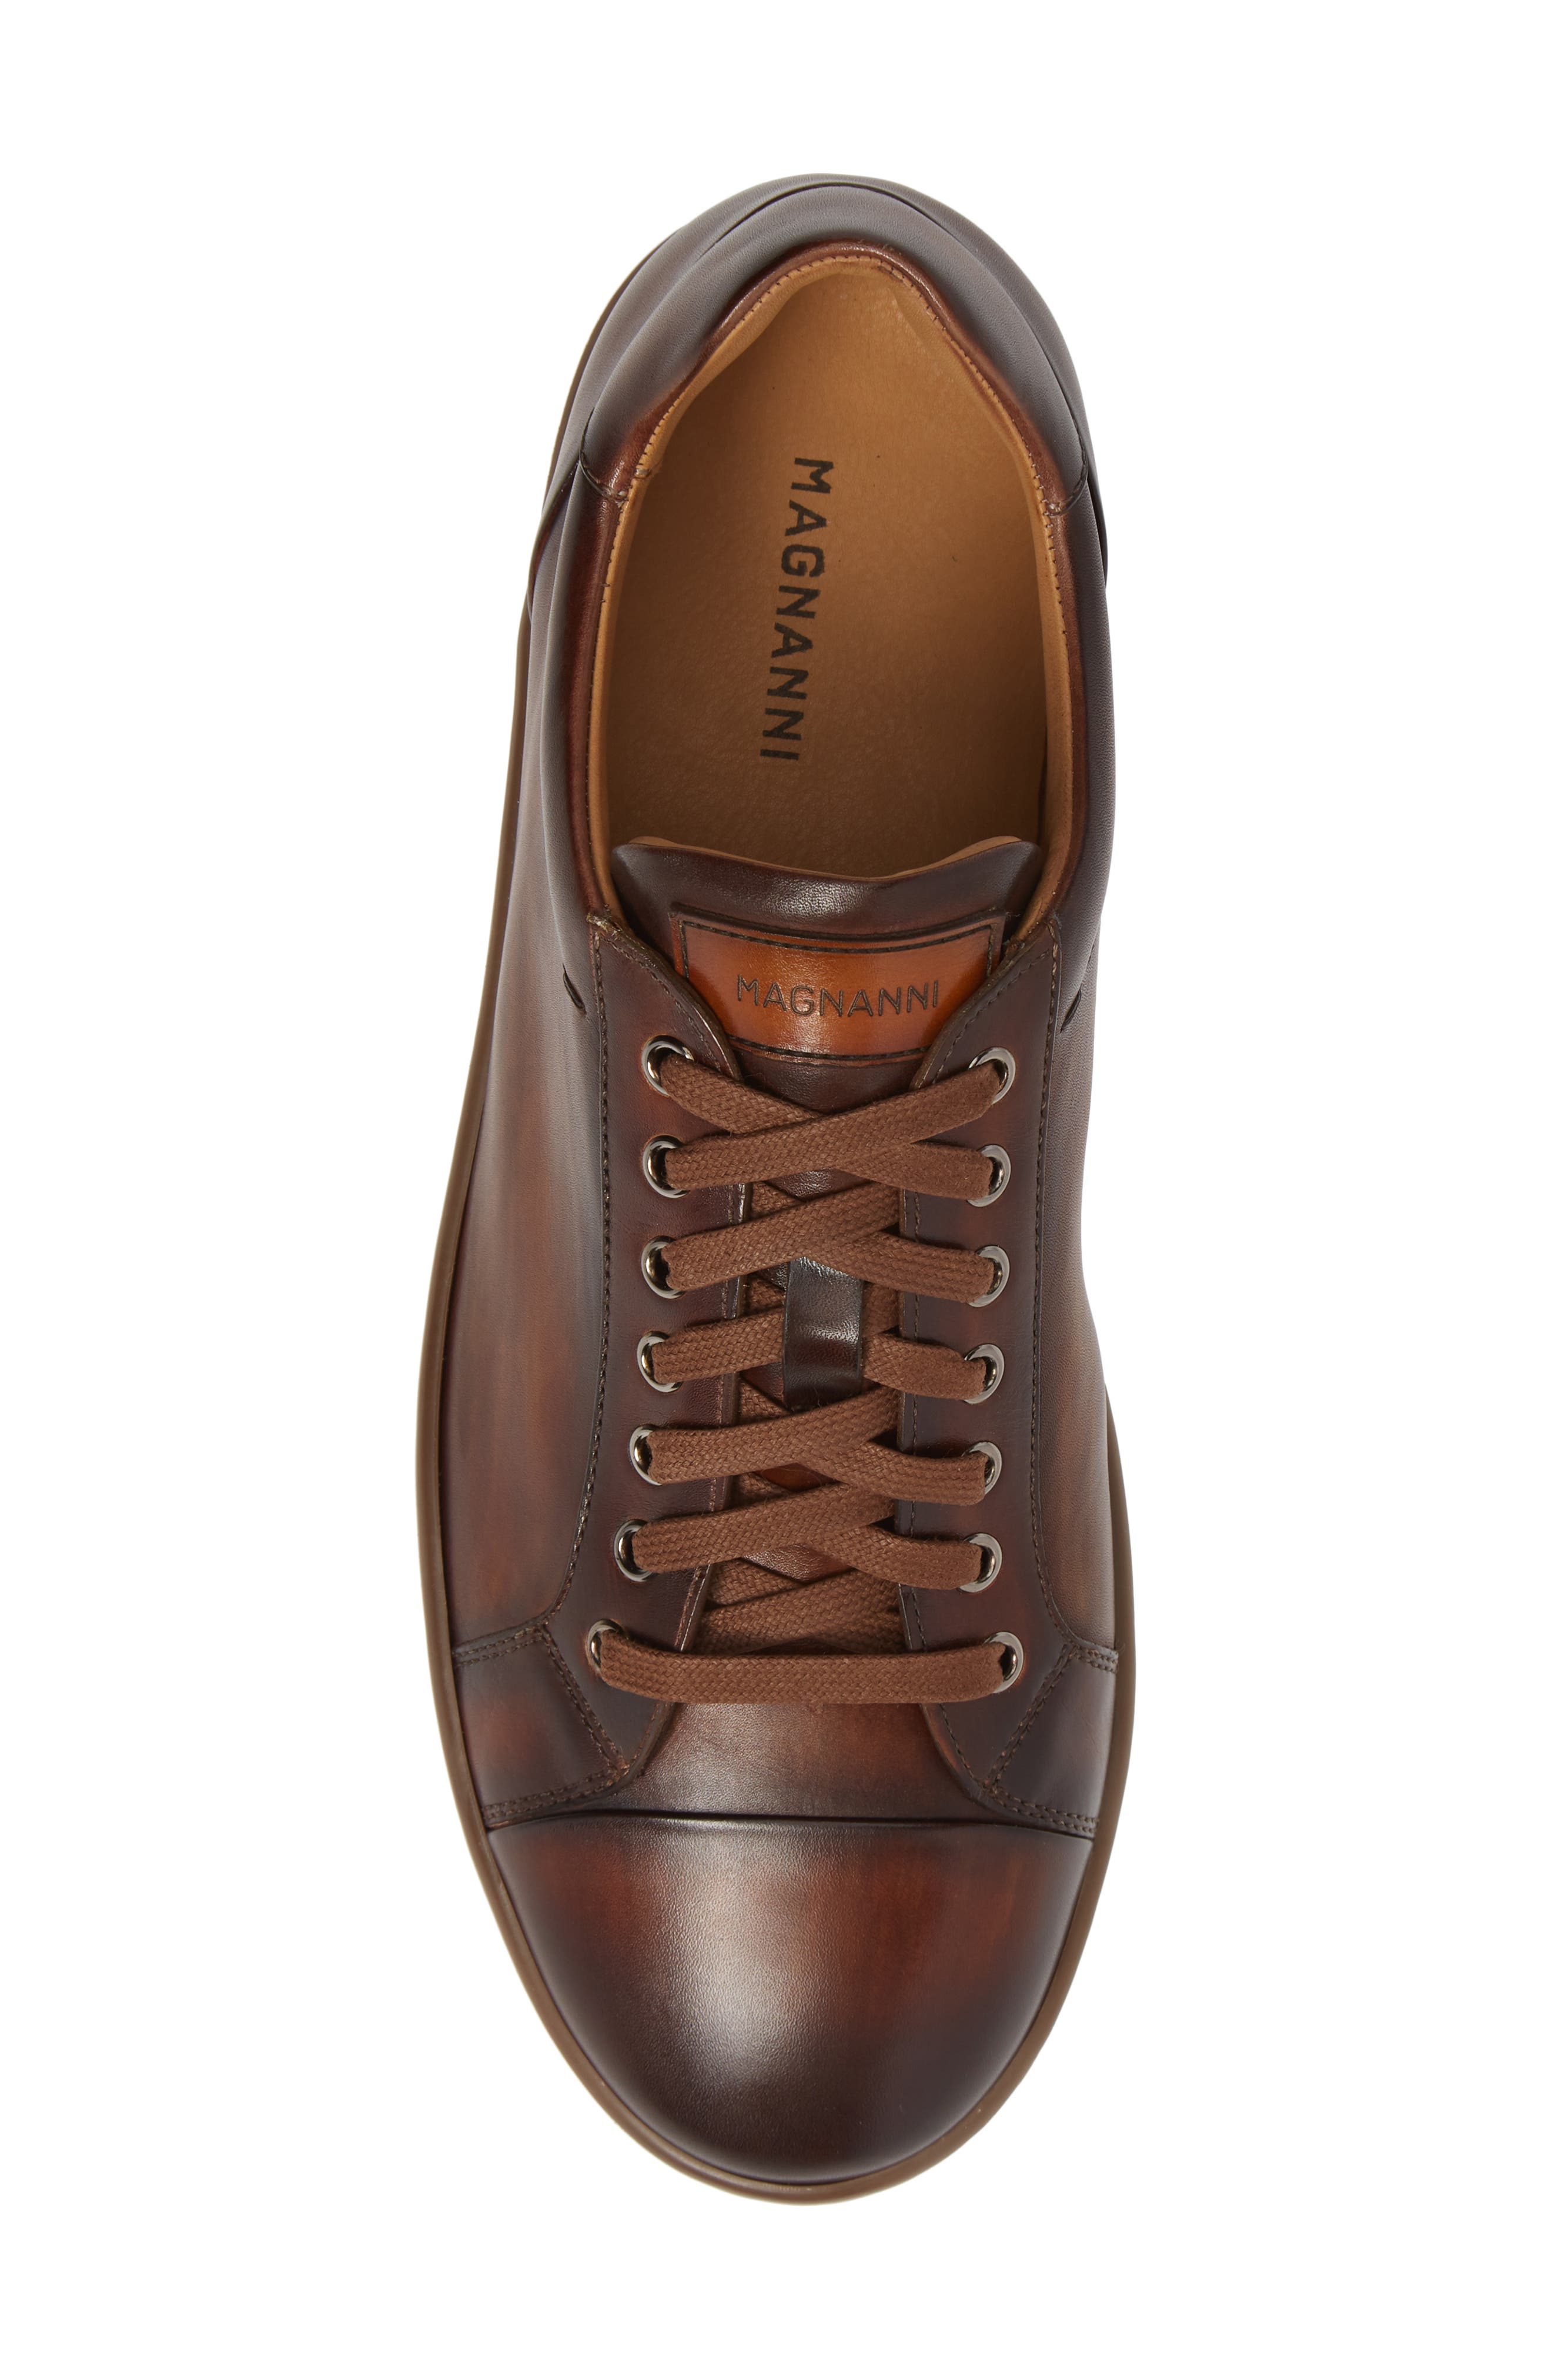 Caitin Sneaker,                             Alternate thumbnail 5, color,                             TABACO LEATHER